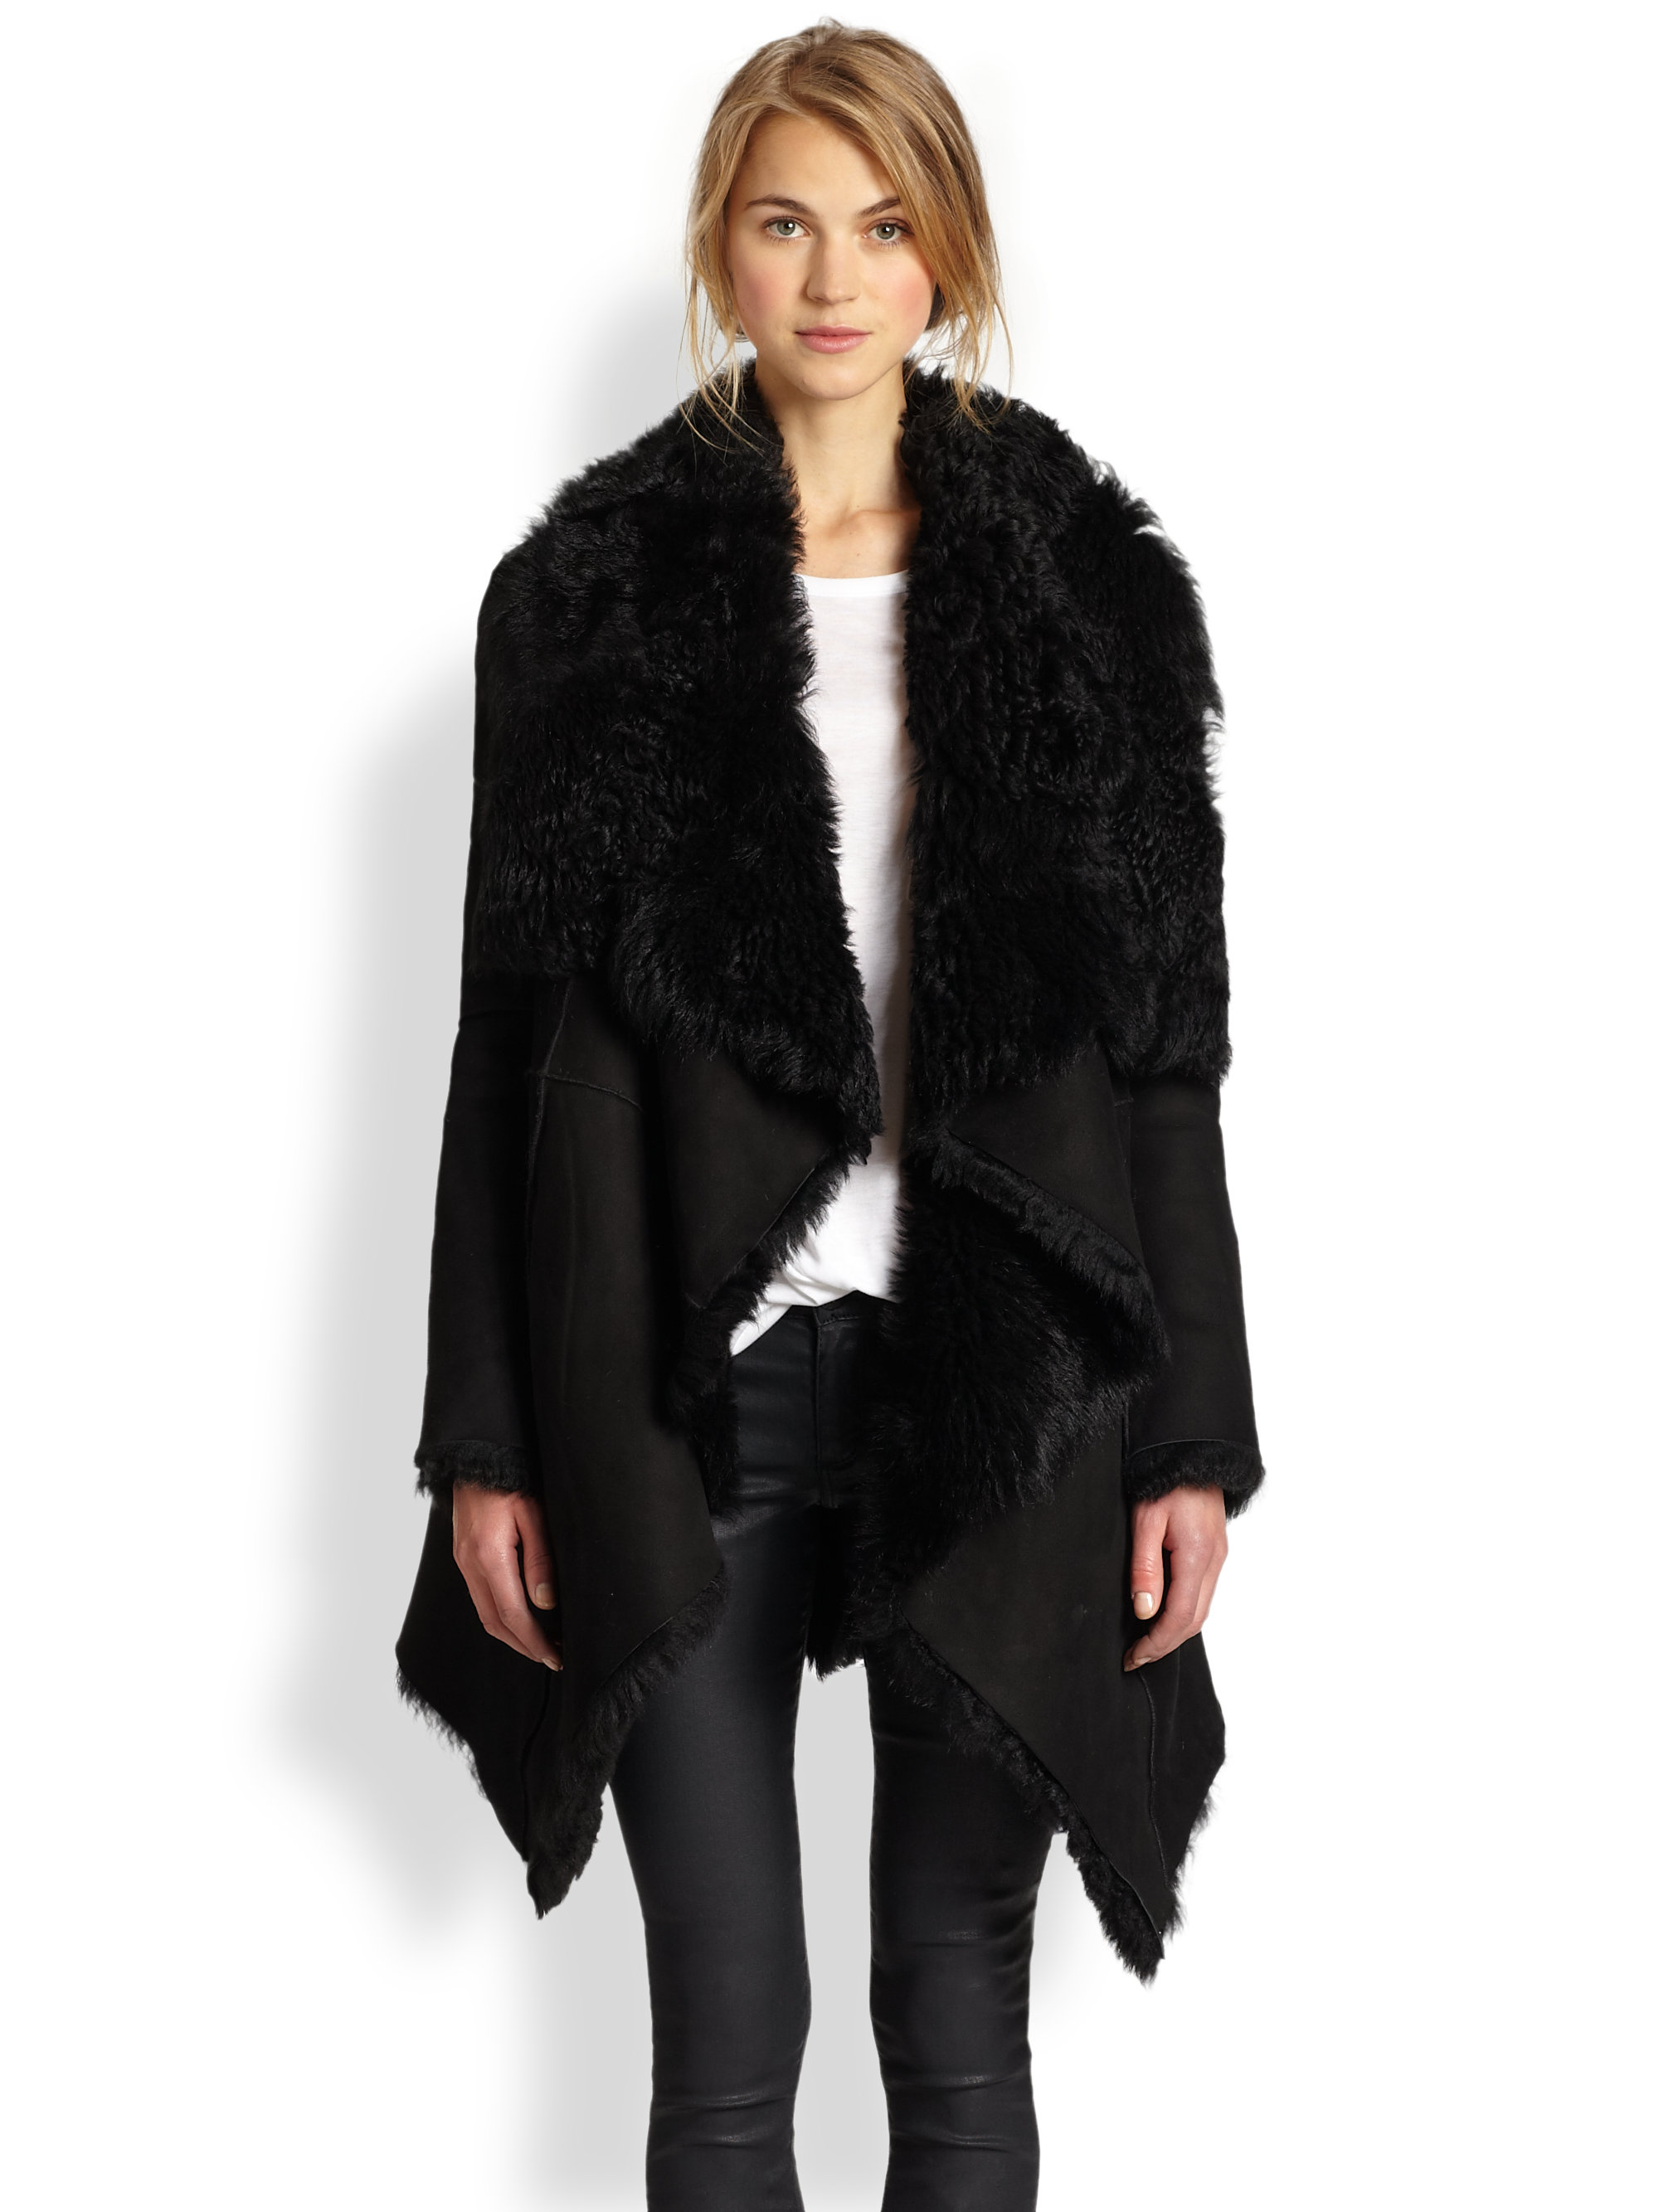 Rebecca minkoff Brody Suede Shearling Coat in Black | Lyst